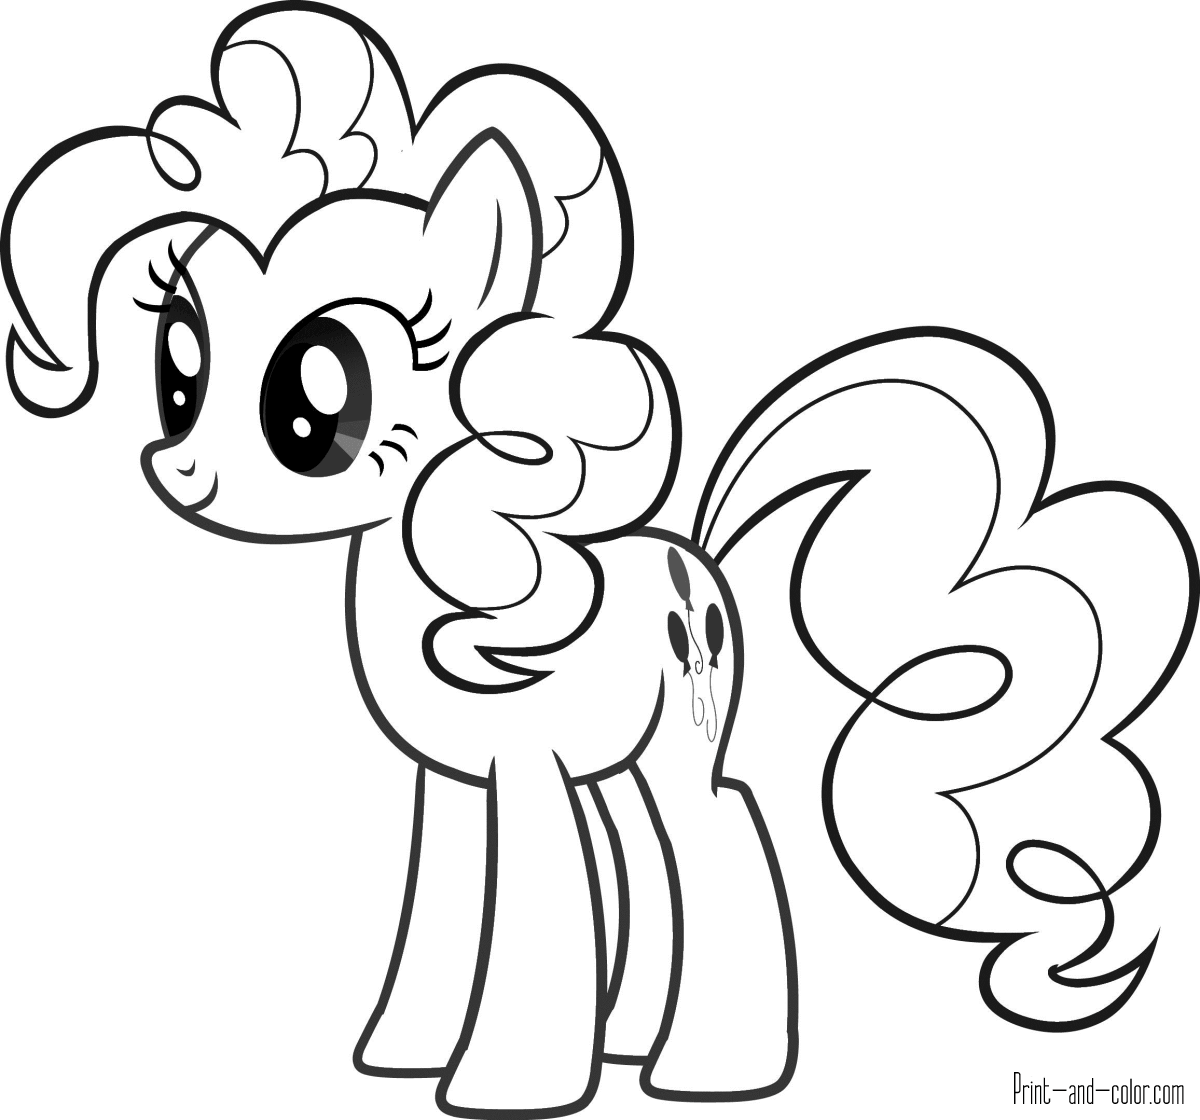 my little pony picters my little pony coloring pages print and colorcom picters pony my little